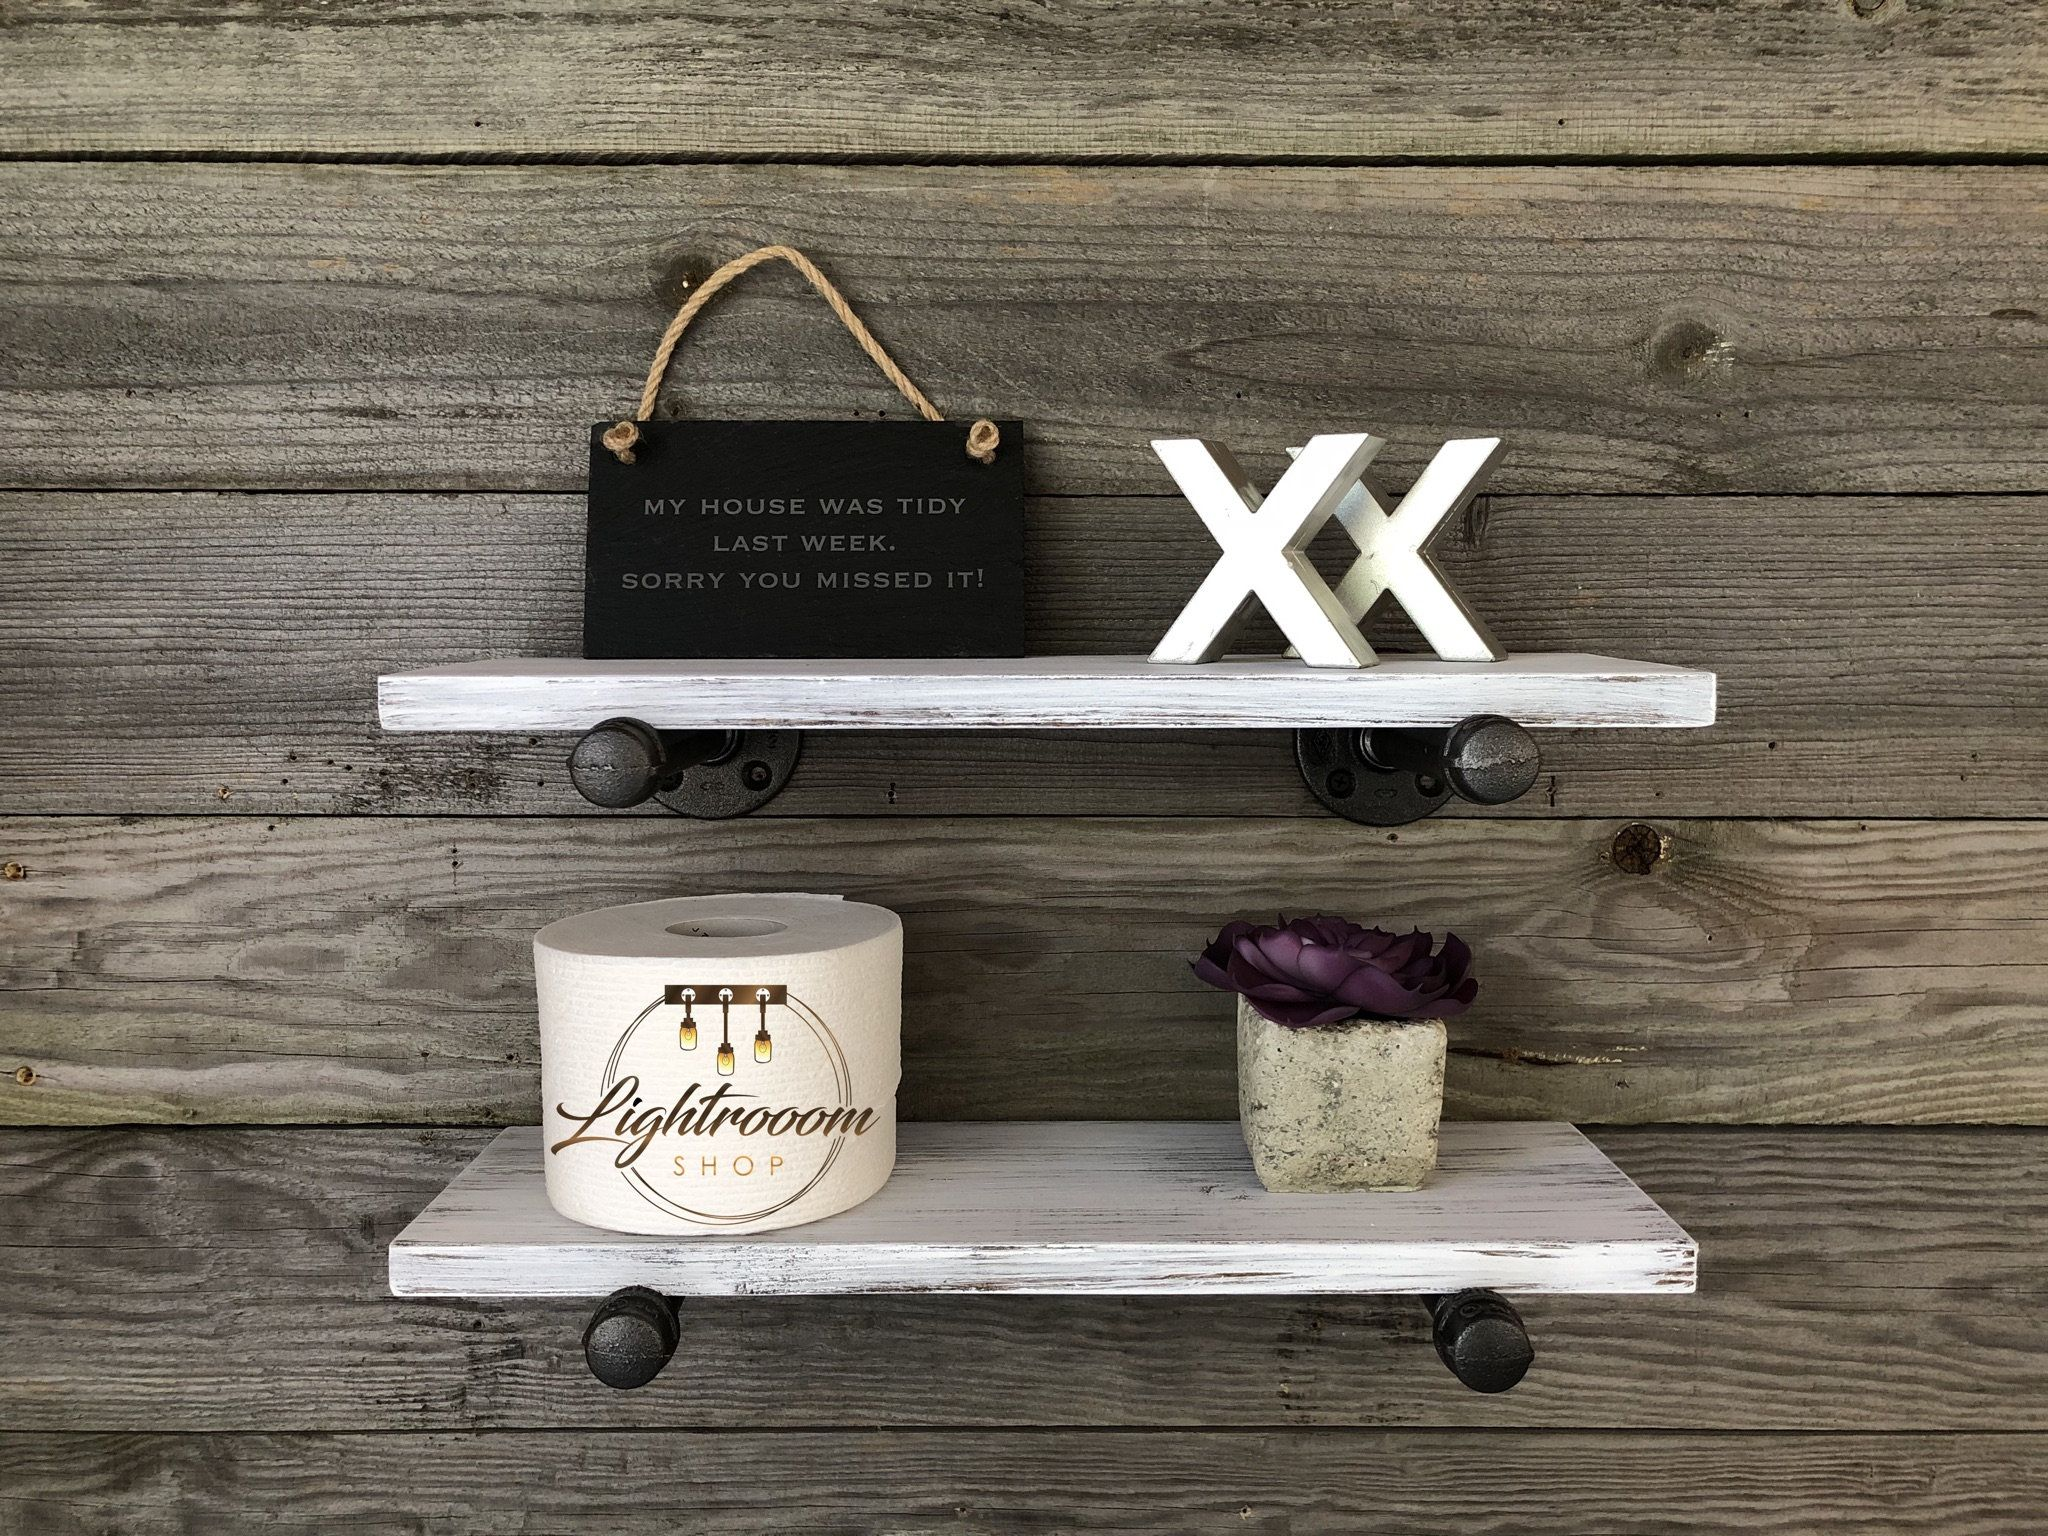 White Whitewash 5 5 Deep Floating Shelves Wall Shelf Kitchen Bathroom Industrial Rustic Handmade Floating Shelves Bathroom Shelves White Wall Shelves